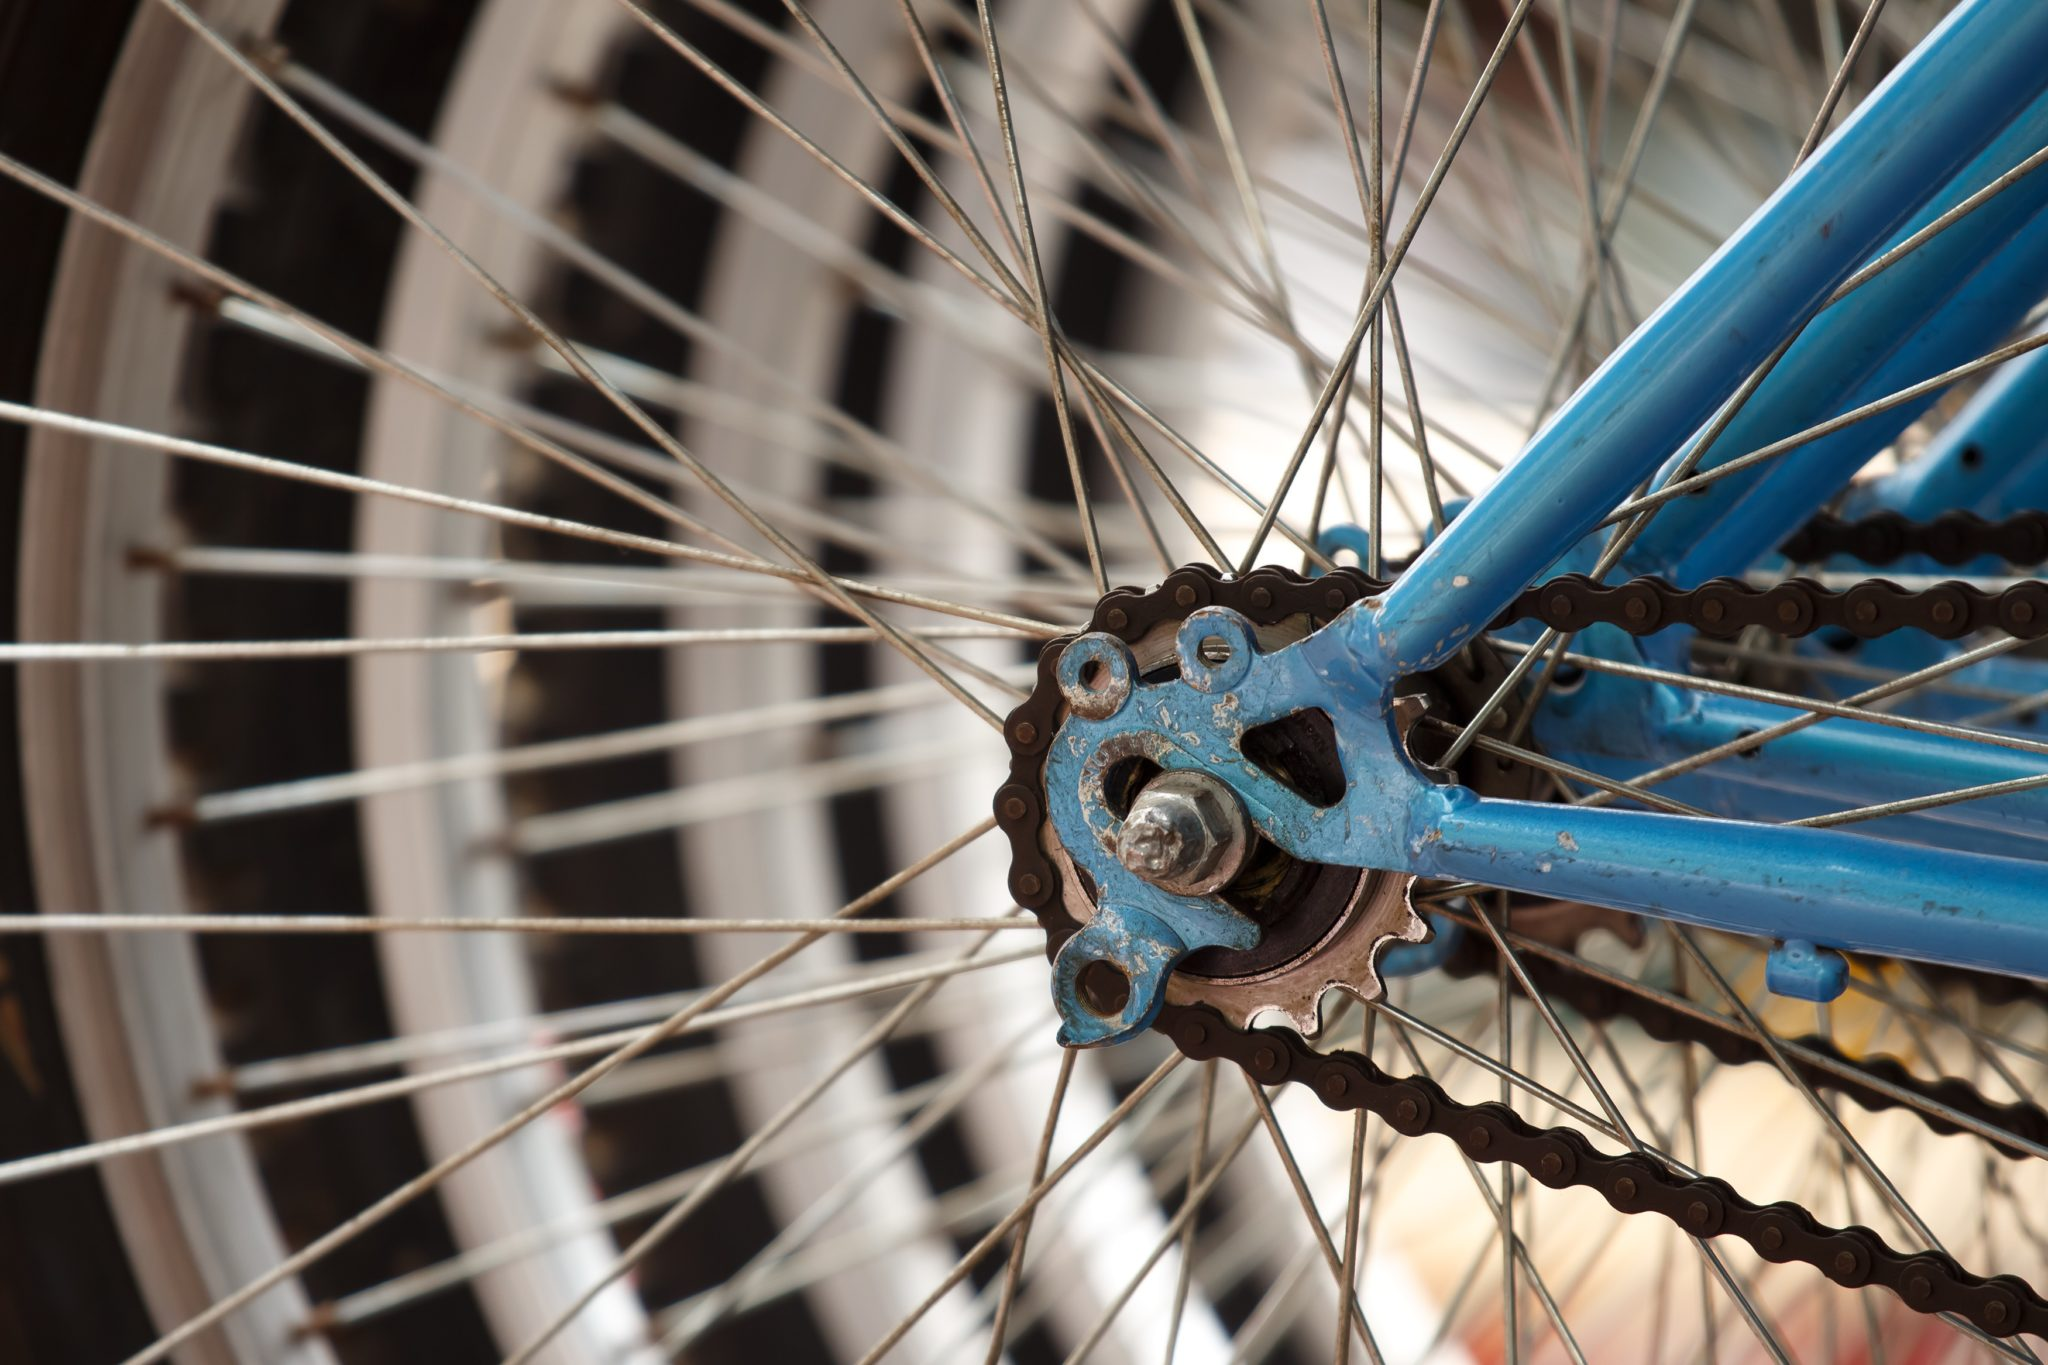 how do bicycle gears work